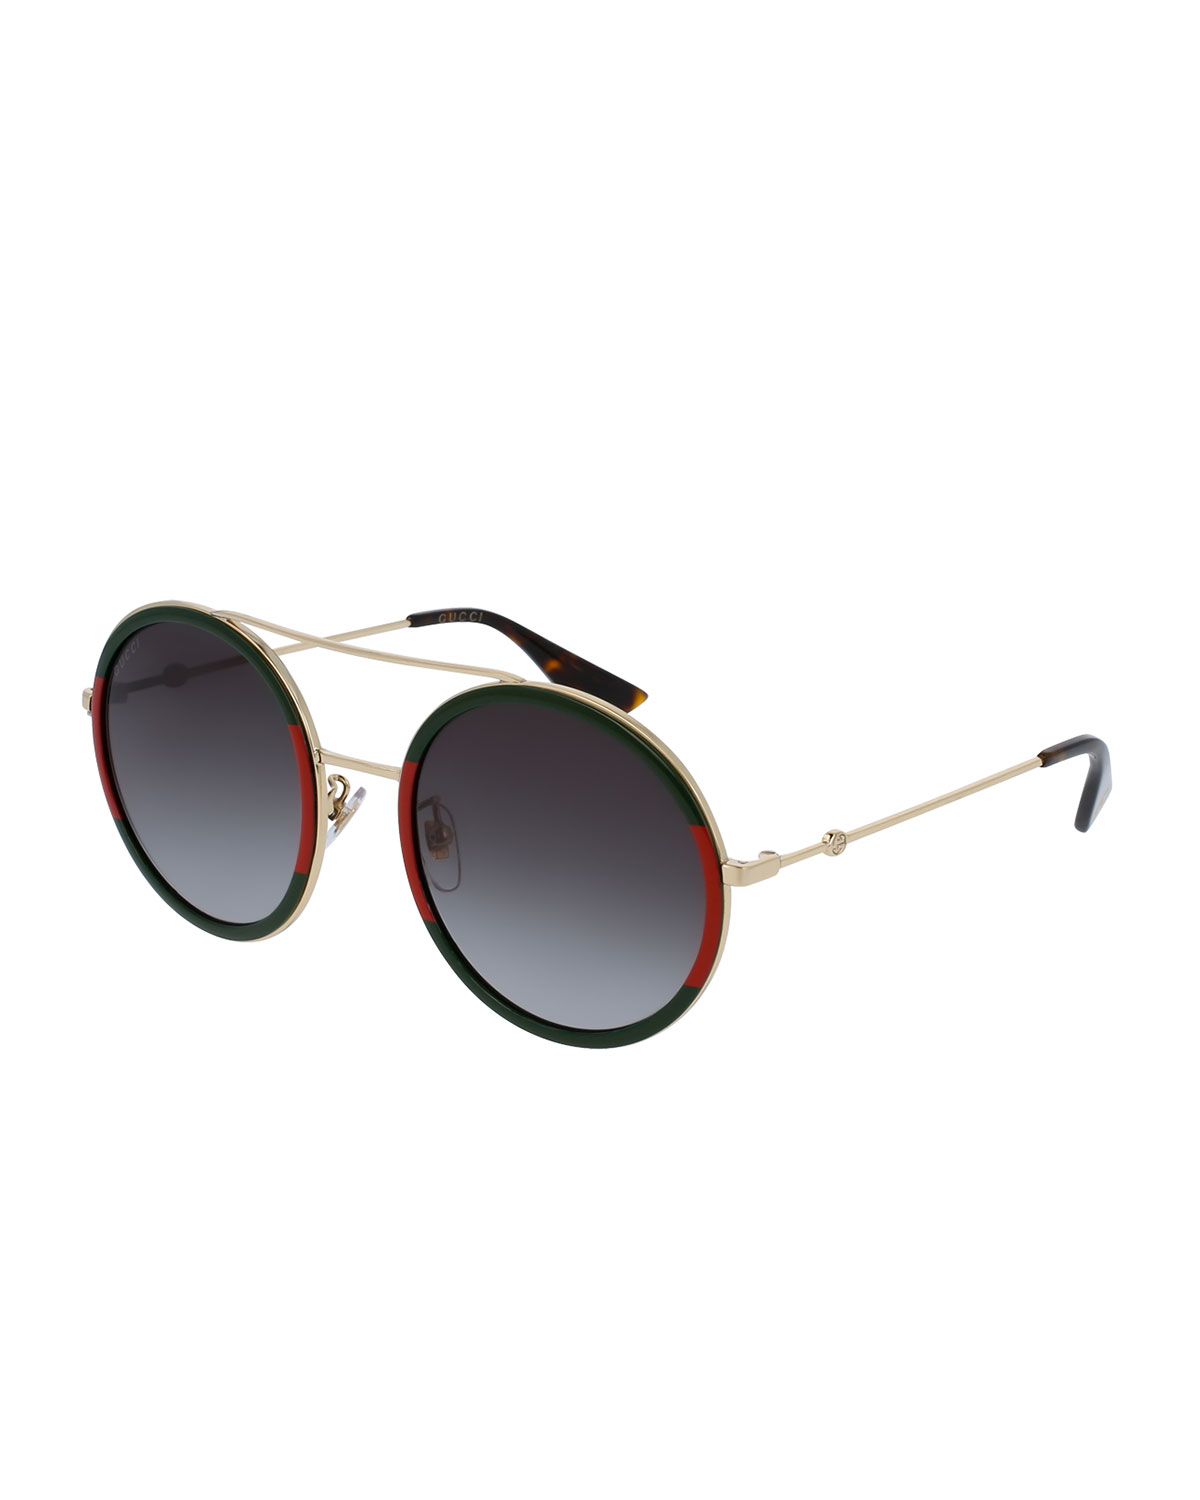 76052183f9529 Gucci Web Round Sunglasses